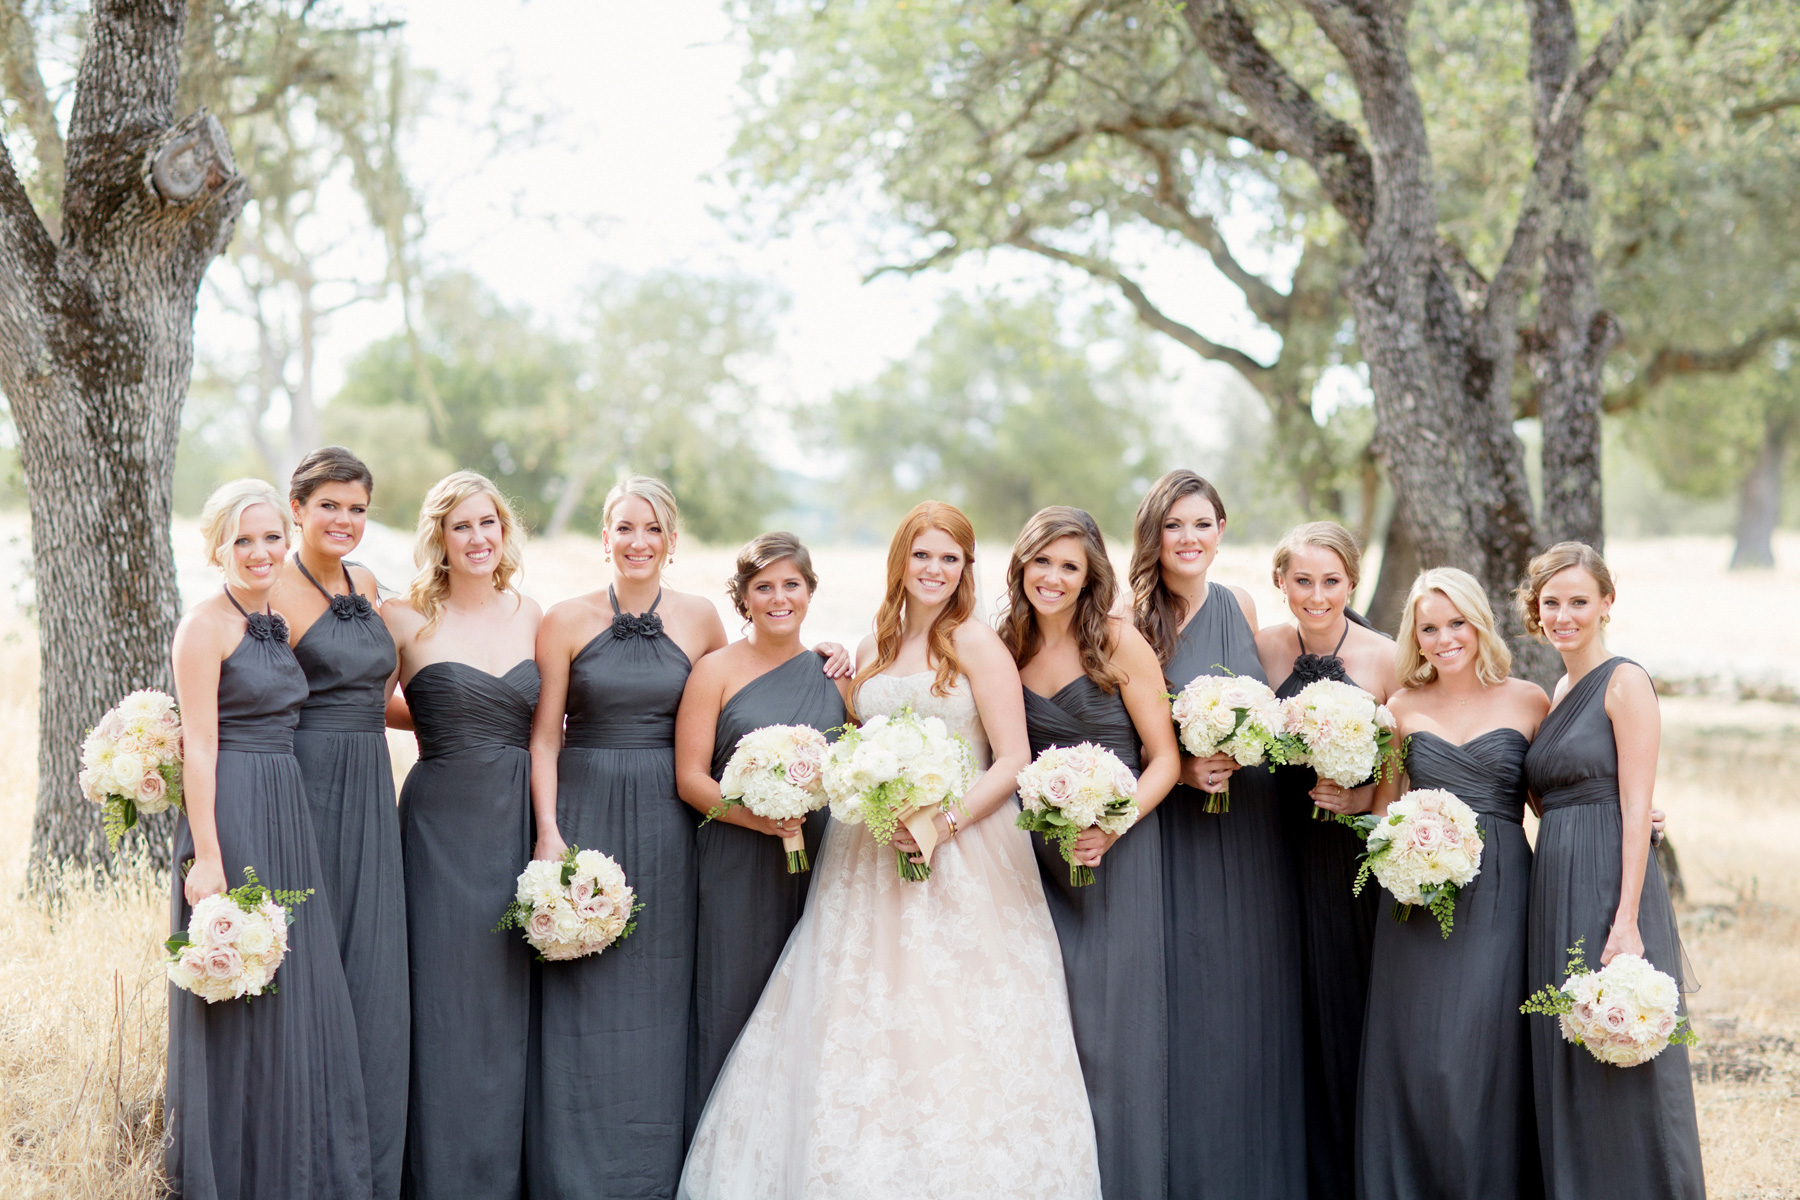 Bridesmaids different dresses same color grey